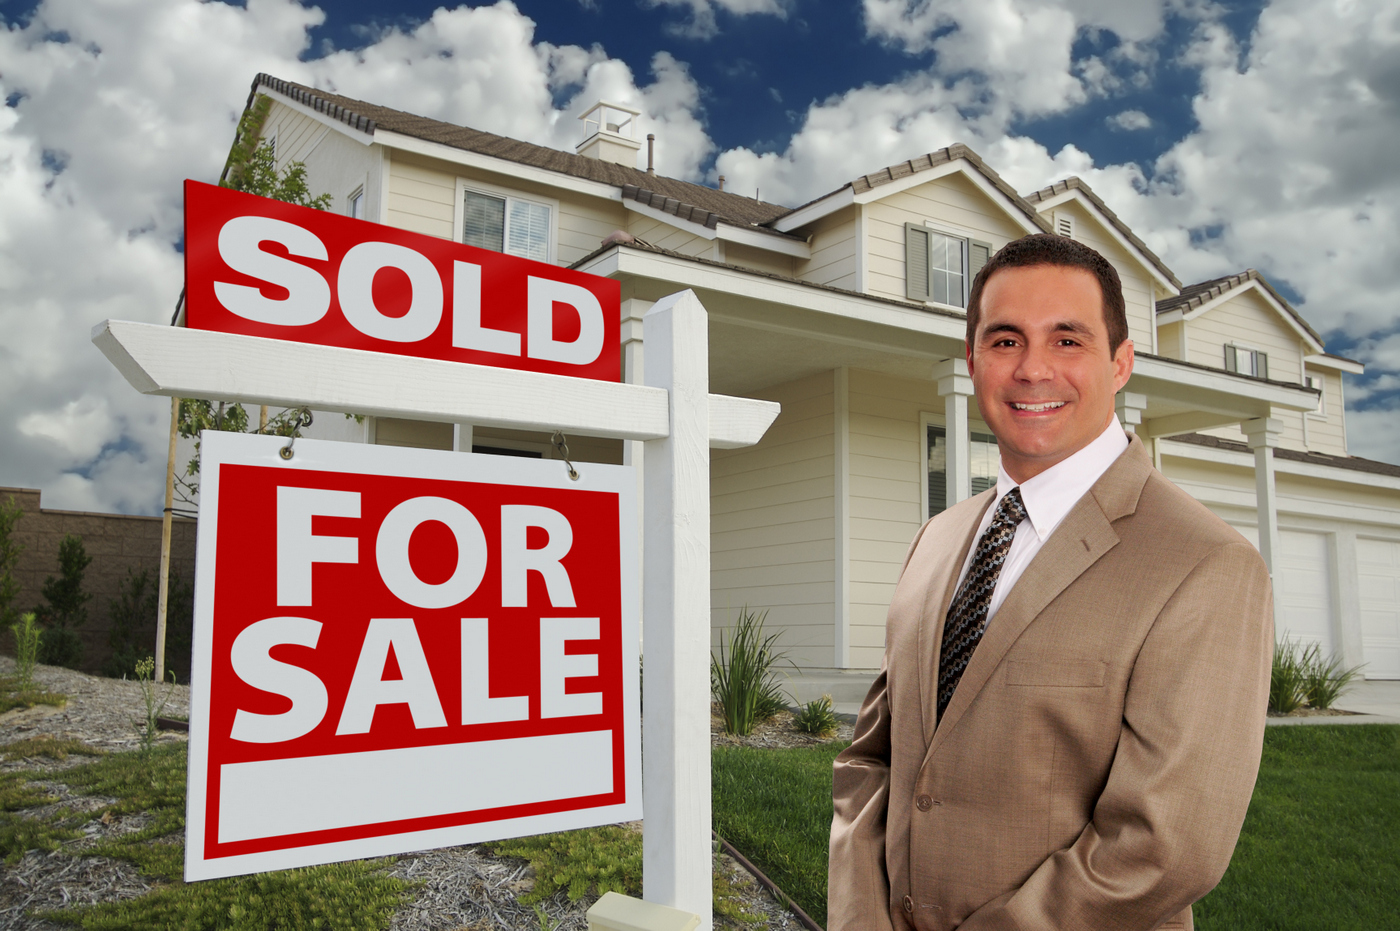 Get rid of your mortgage by a quick sale of your home before your lender forecloses.